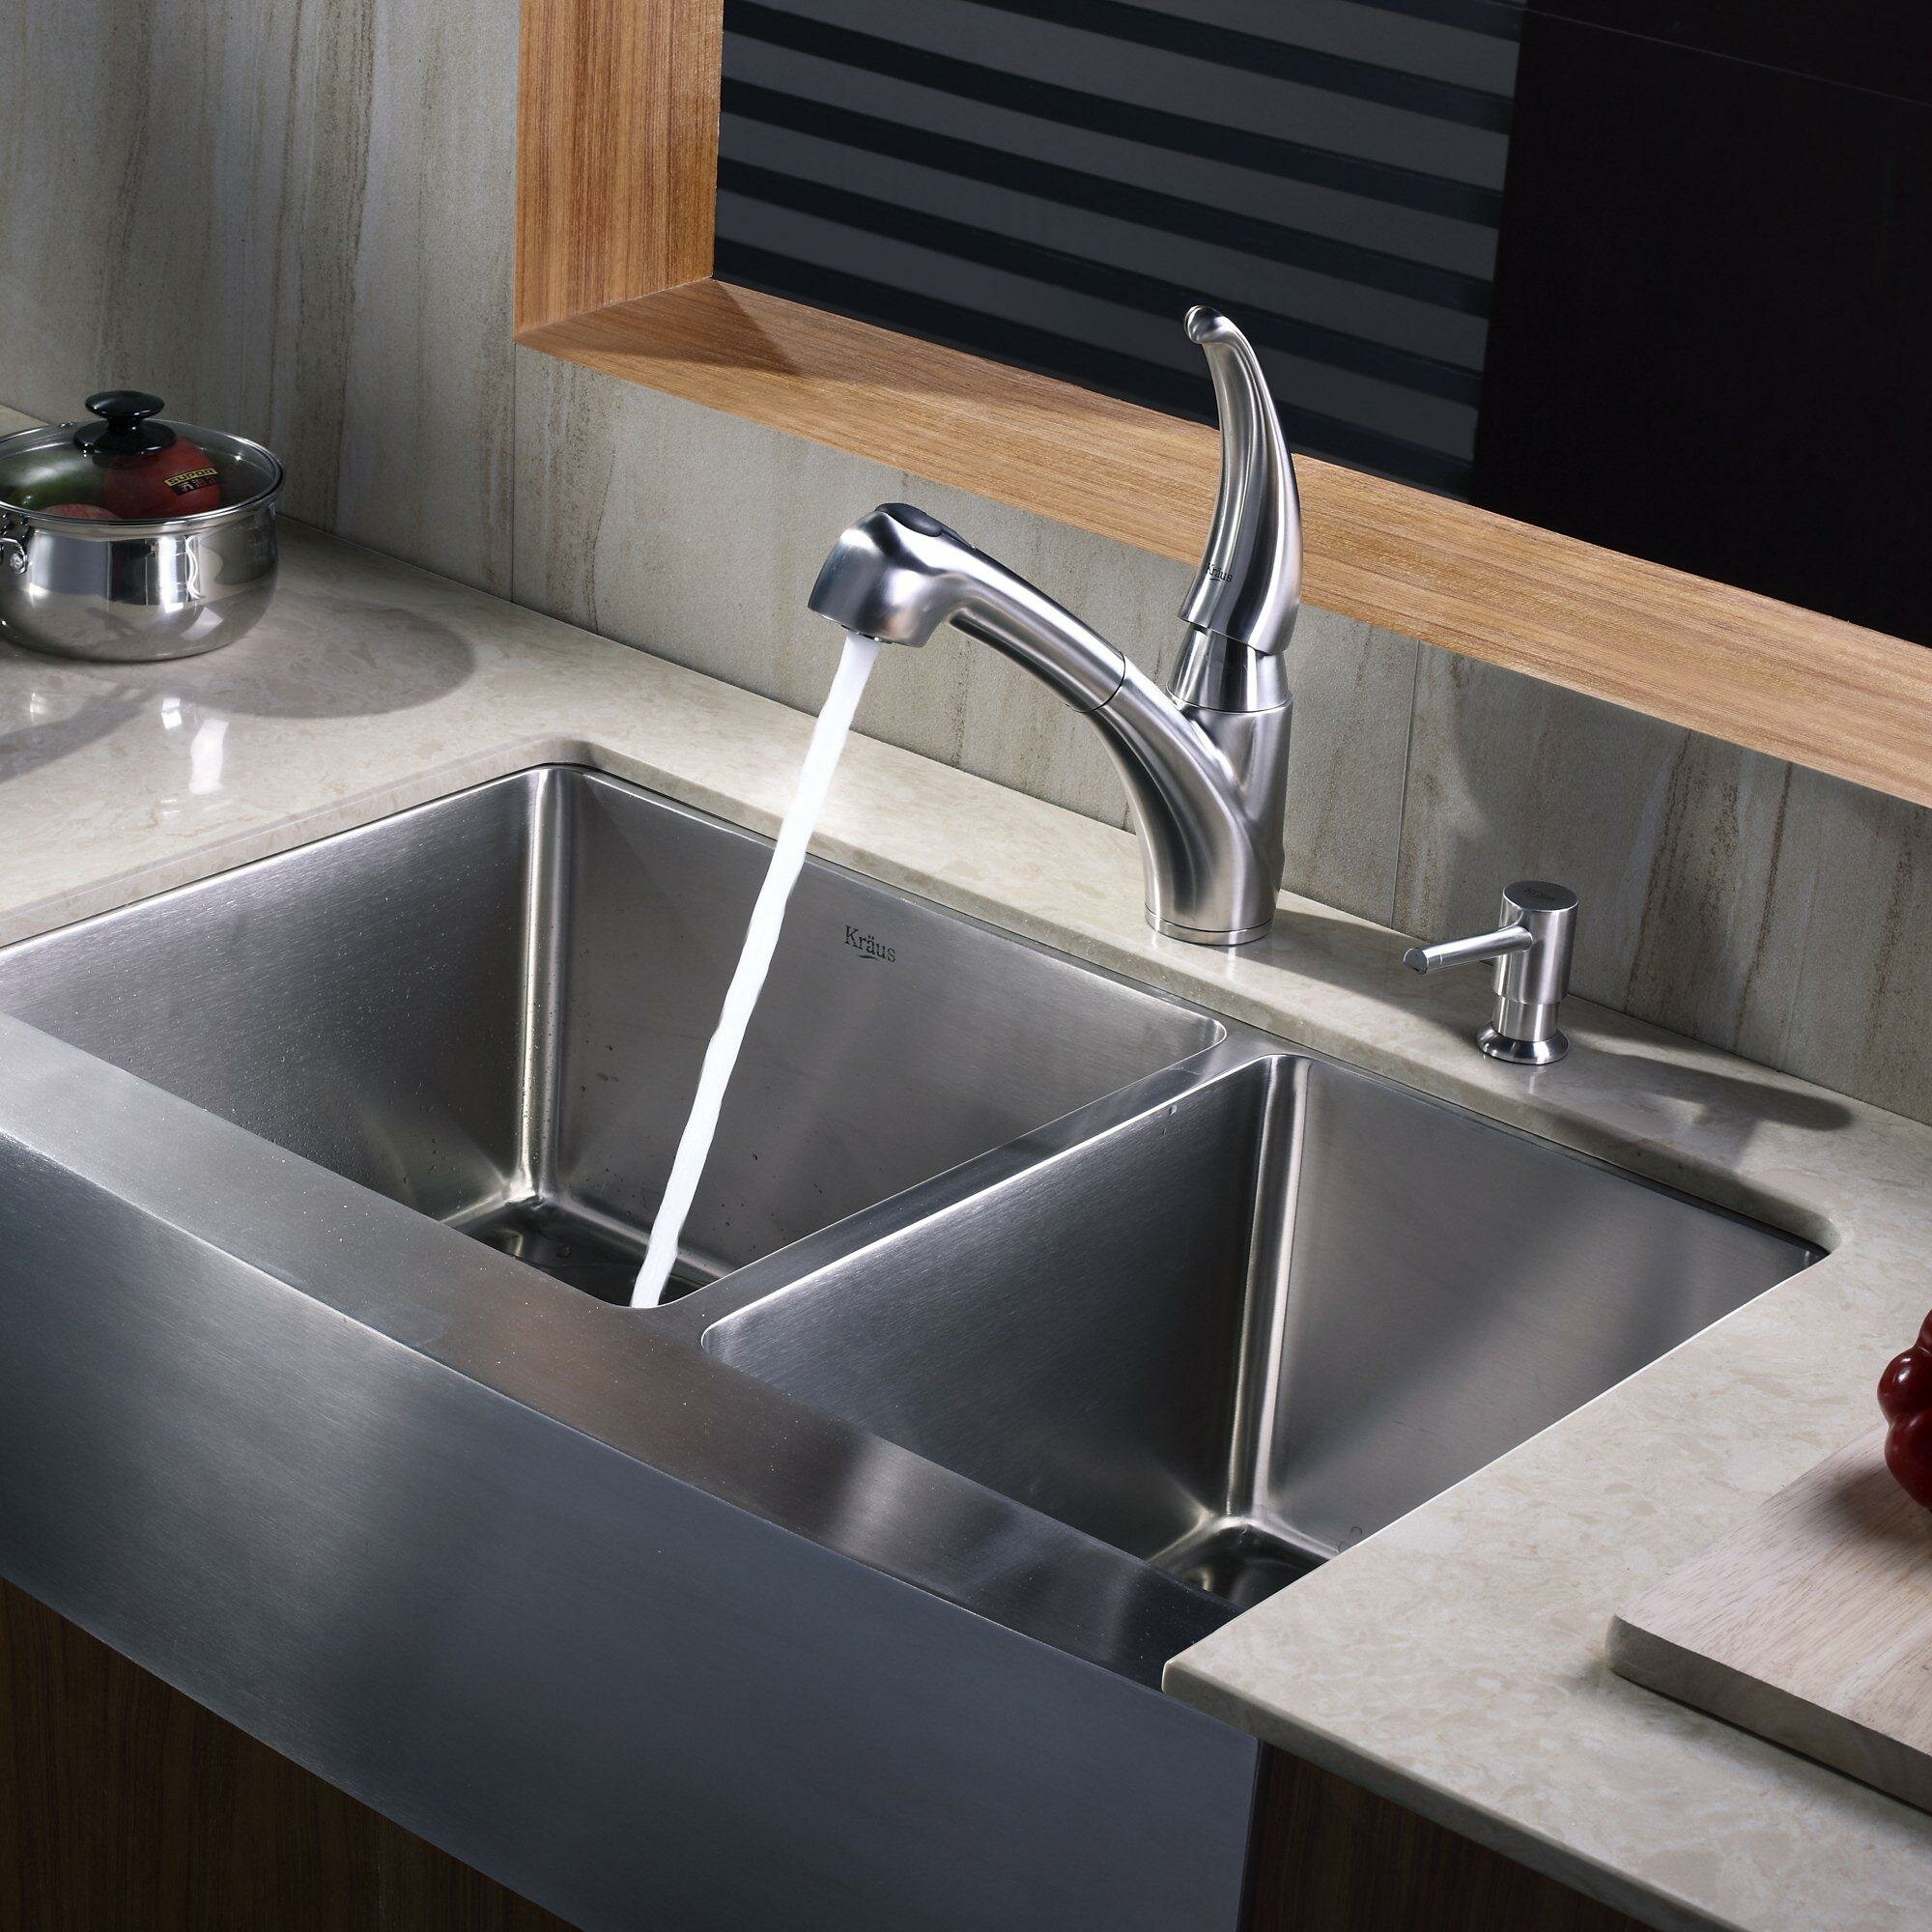 20 Farmhouse Sink : Kraus 32.88